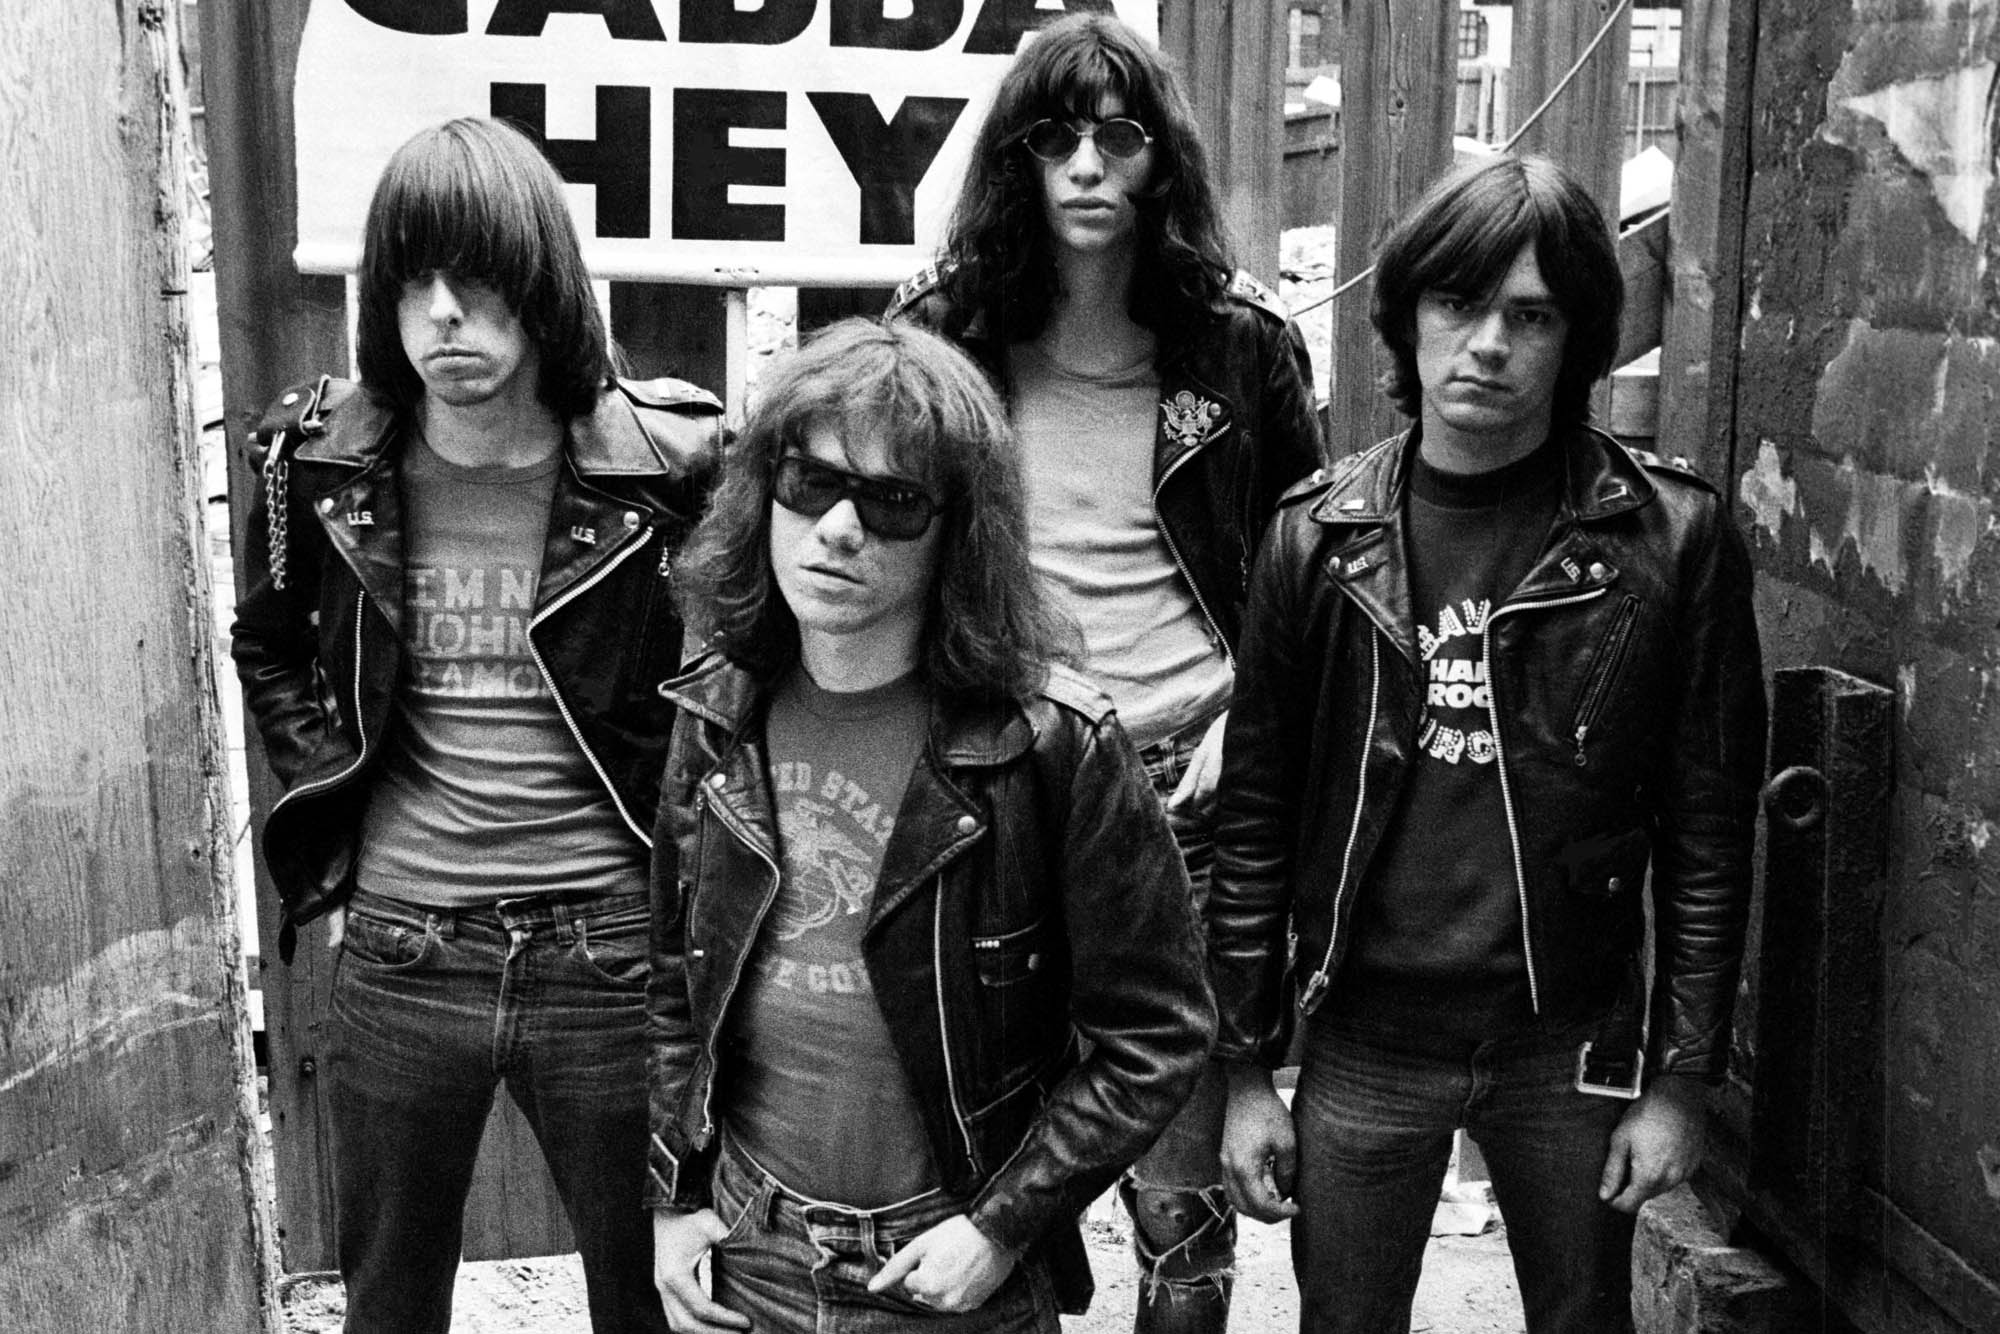 (FILE PHOTO) Tommy Ramone of The Ramones Has Died At The Age of 62 After Undergoing Treatment For Cancer UNITED KINGDOM - MAY 19: Photo of Johnny RAMONE and Dee Dee RAMONE and Tommy RAMONE and RAMONES; L-R. Johnny Ramone, Tommy Ramone (front), Joey Ramone (back), Dee Dee Ramone (Photo by Ian Dickson/Redferns)